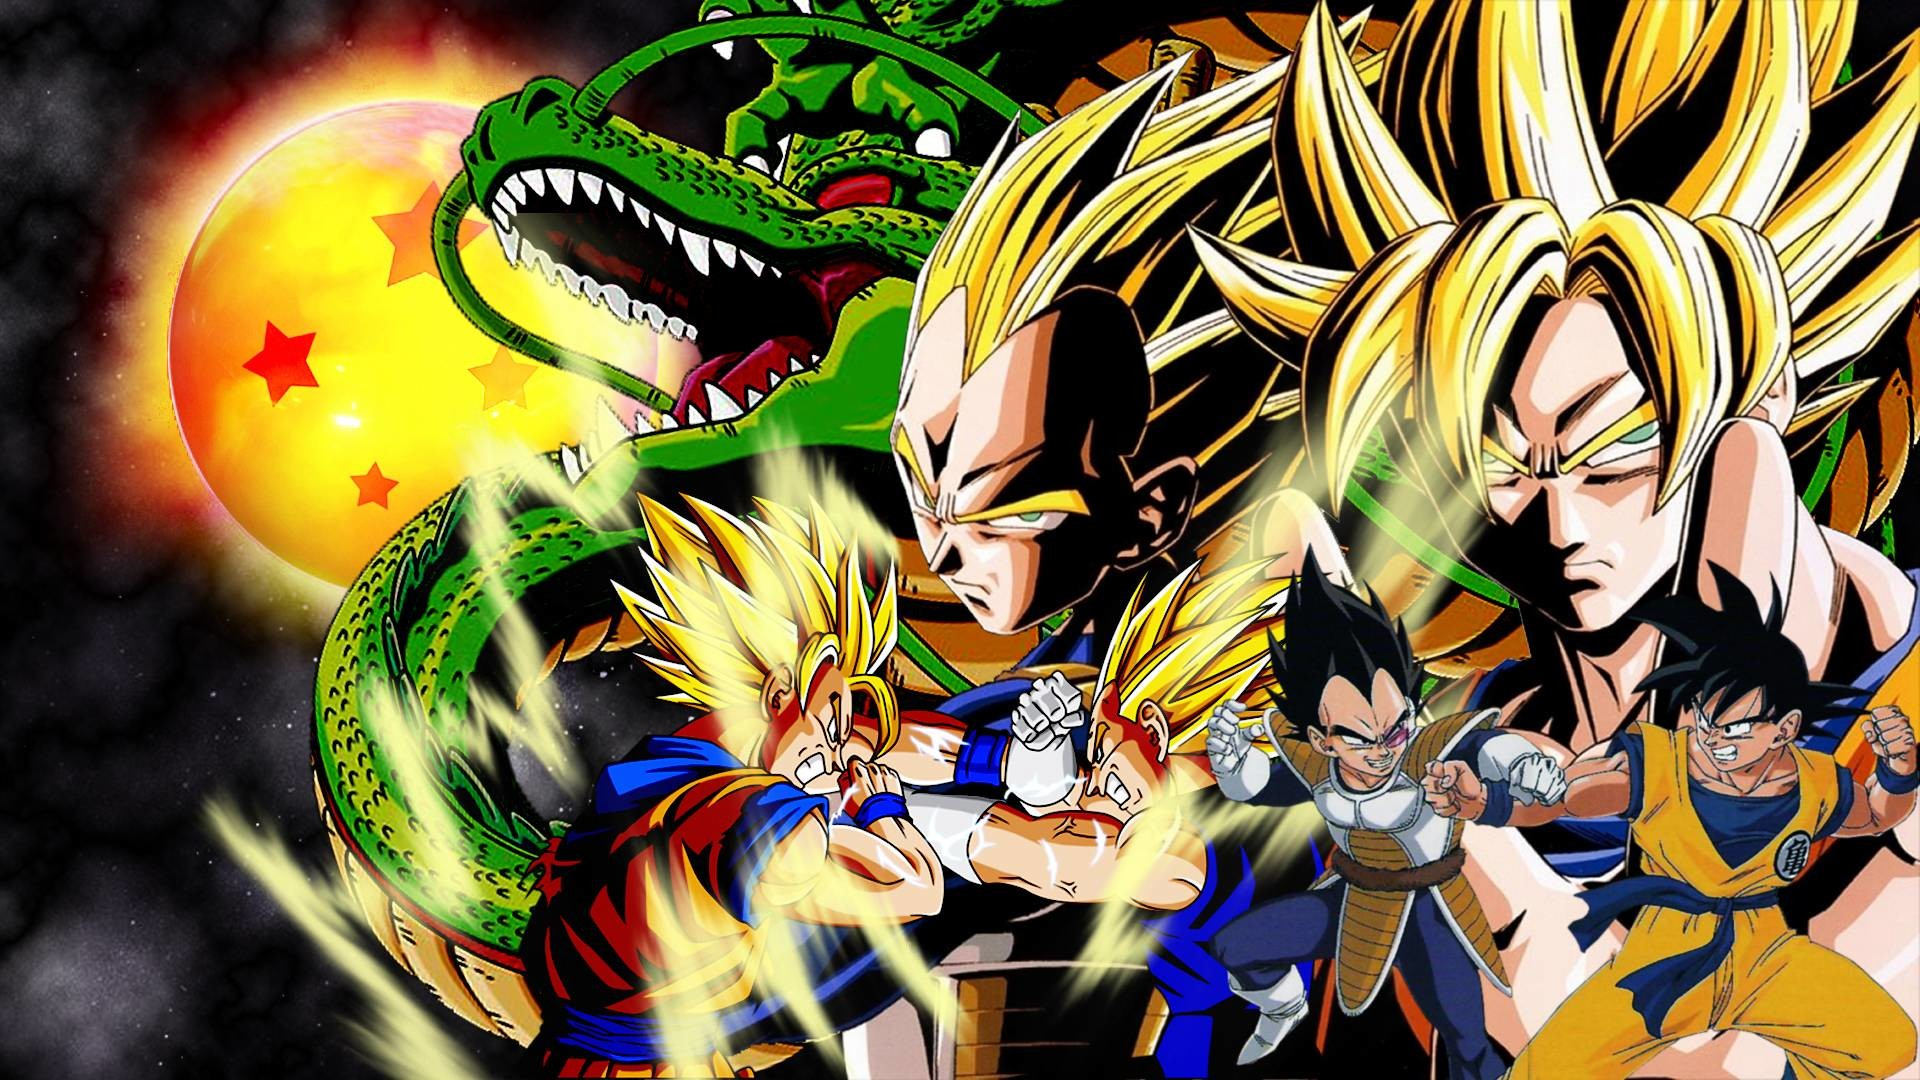 Goku Vs Broly Wallpaper 61 Images